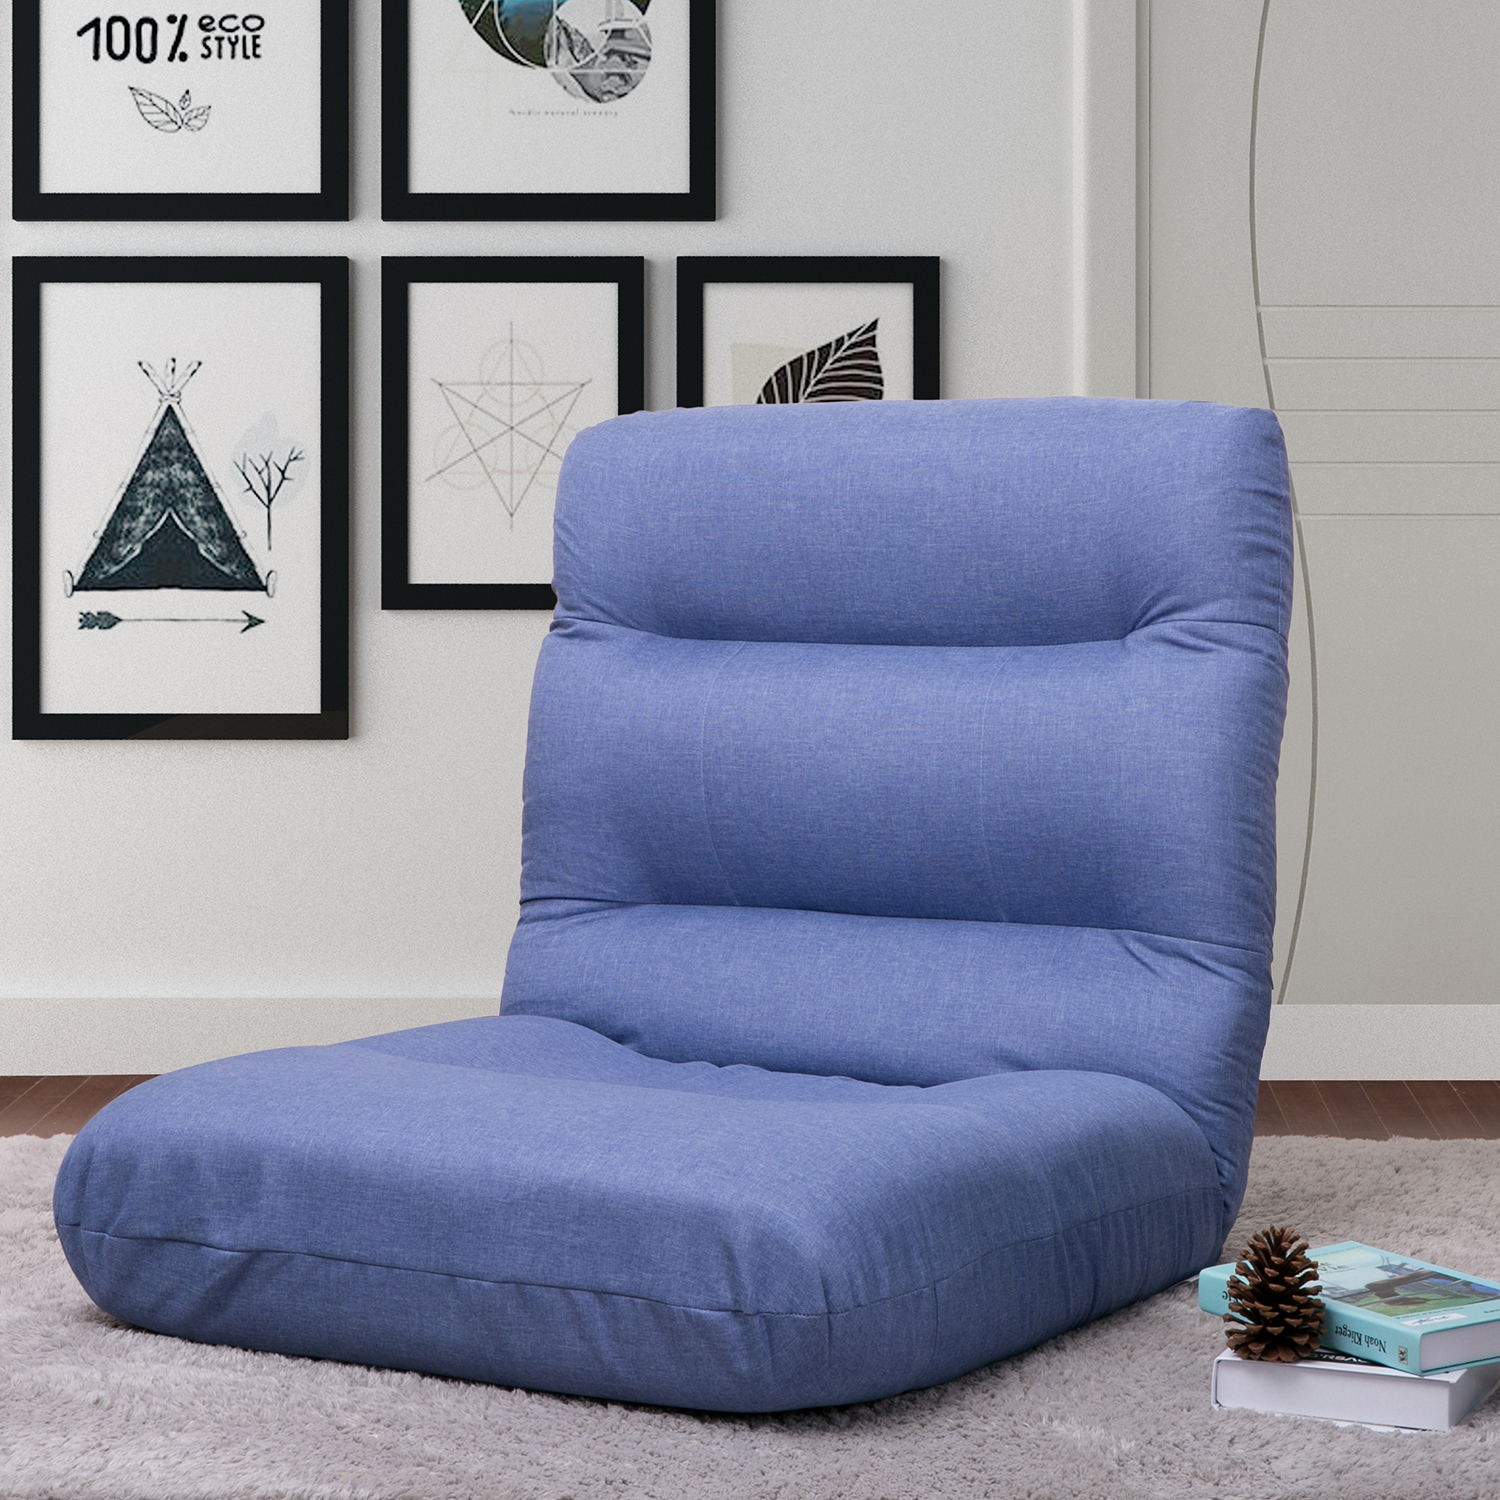 Aoolive Fabric Folding Sofa Chair Floor Chaise Lounge